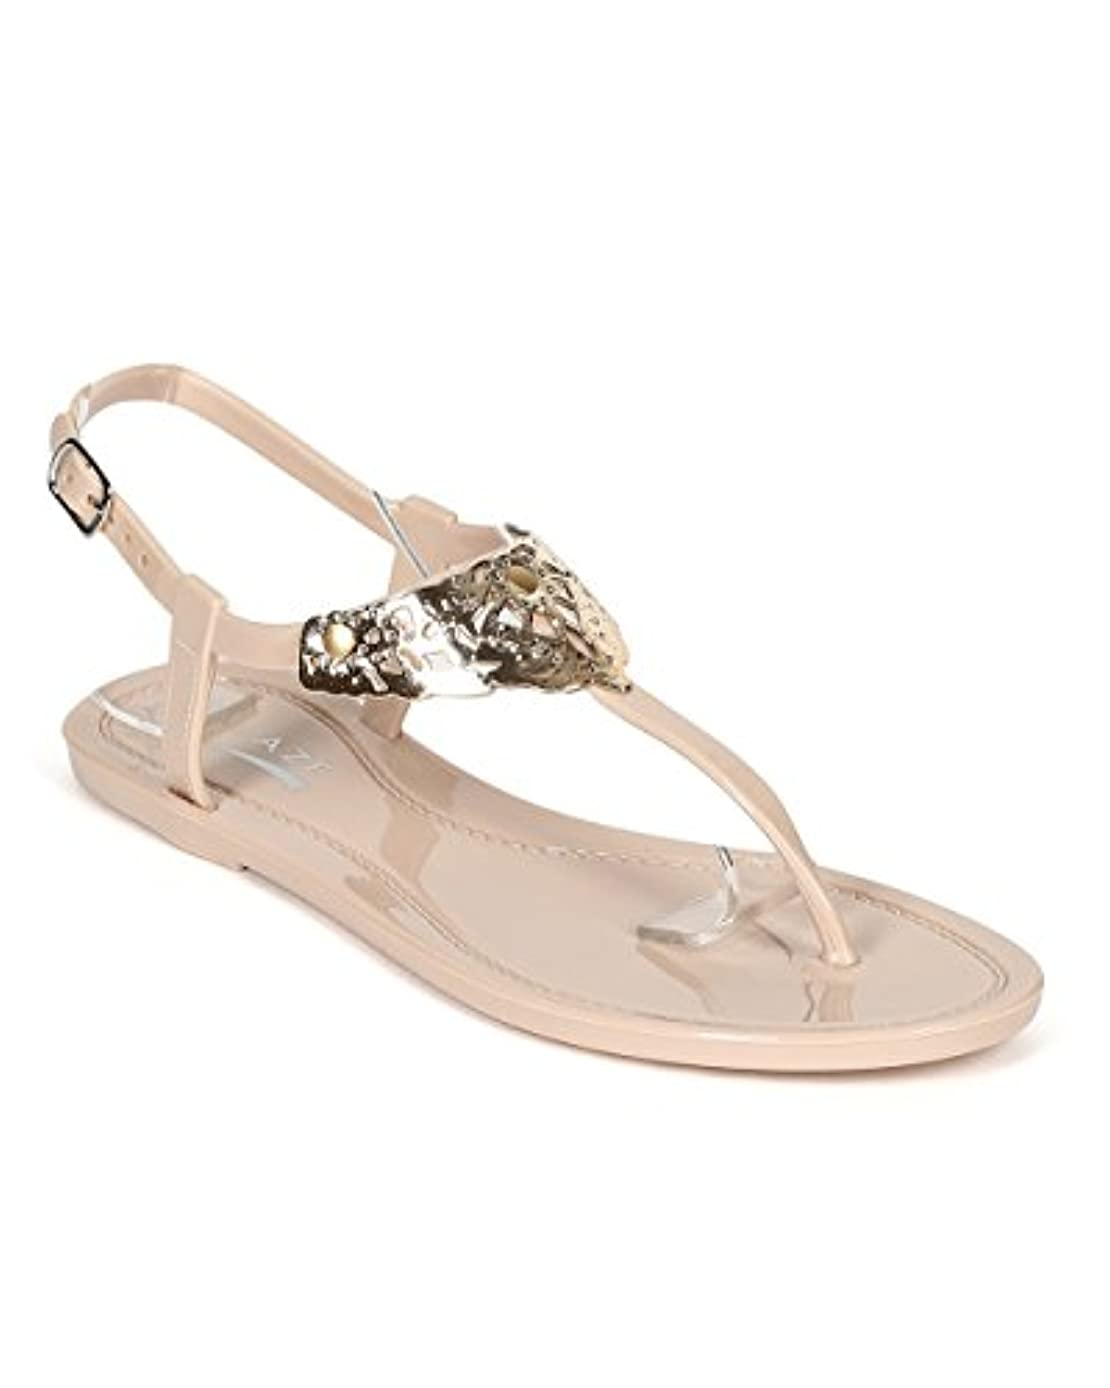 Glaze Women Jelly Gold Stencil Cut Broach T-Strap Slingabck Sandal CD87 - Nude